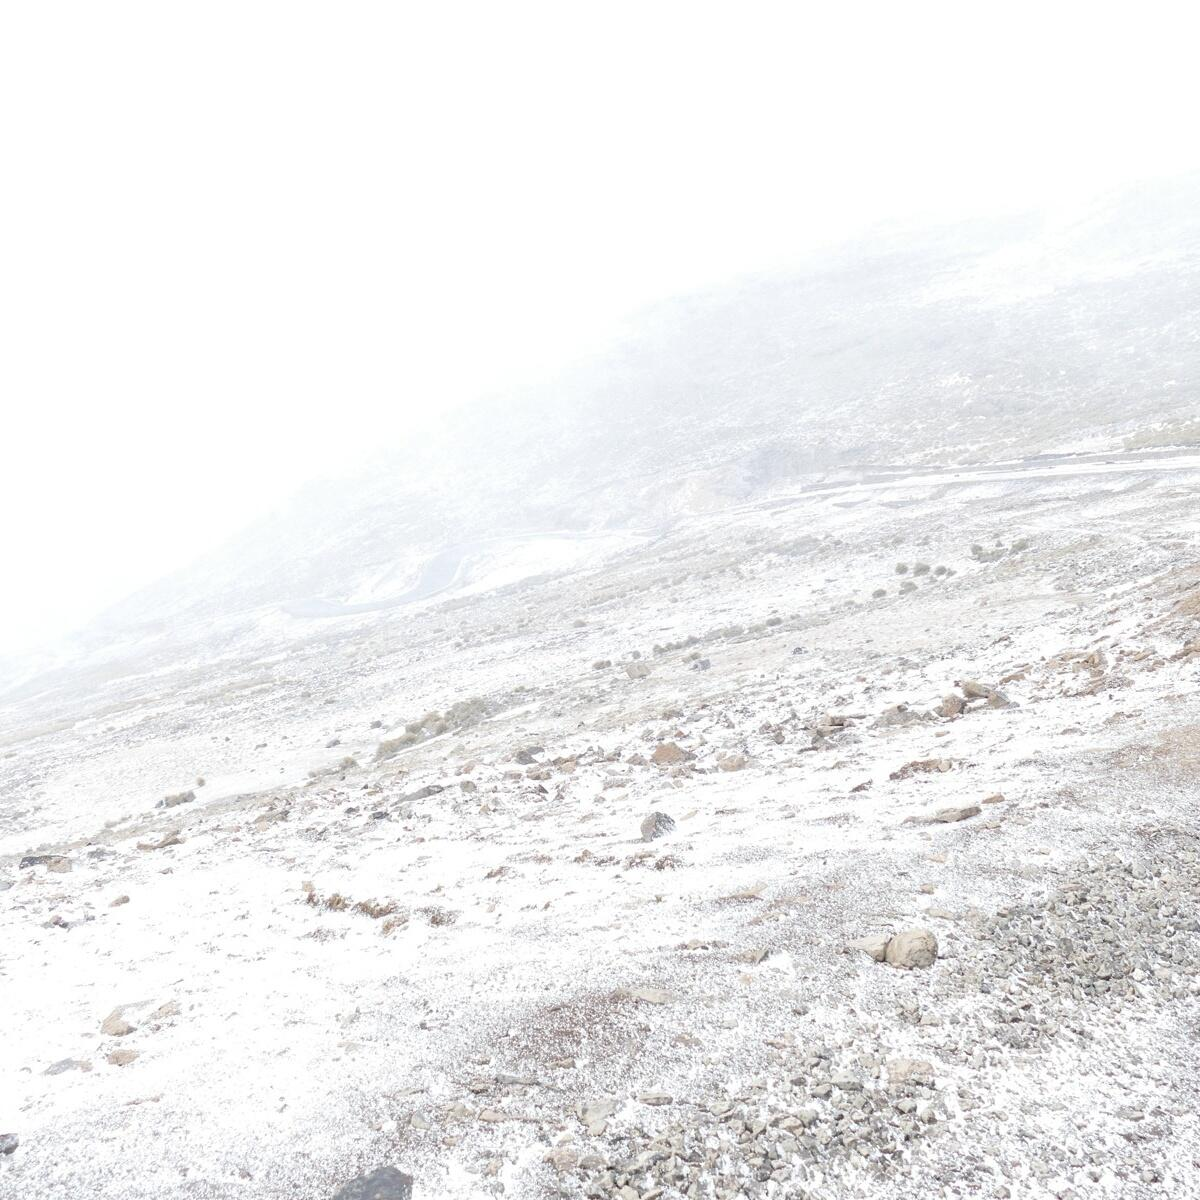 A snow squall sets in on Black Mountain. Noah Strycker